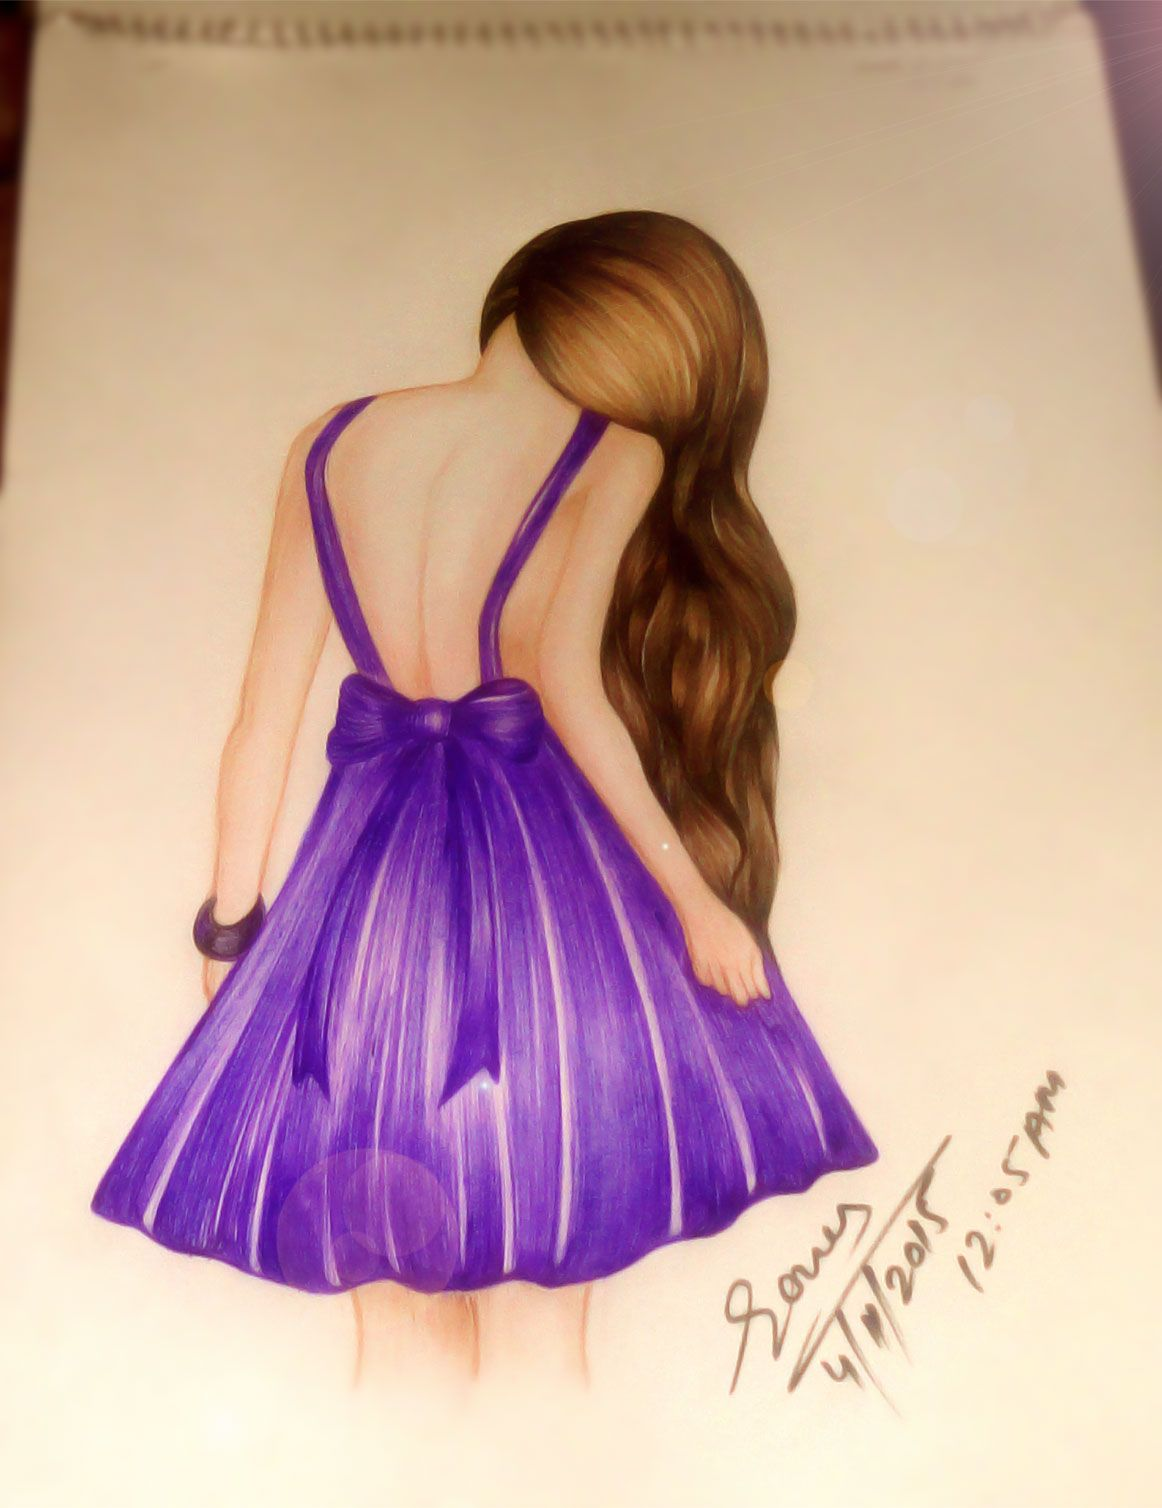 My Animated Baeautiful Girl Sketch Girl Sketch Dress Sketches Hot Dress